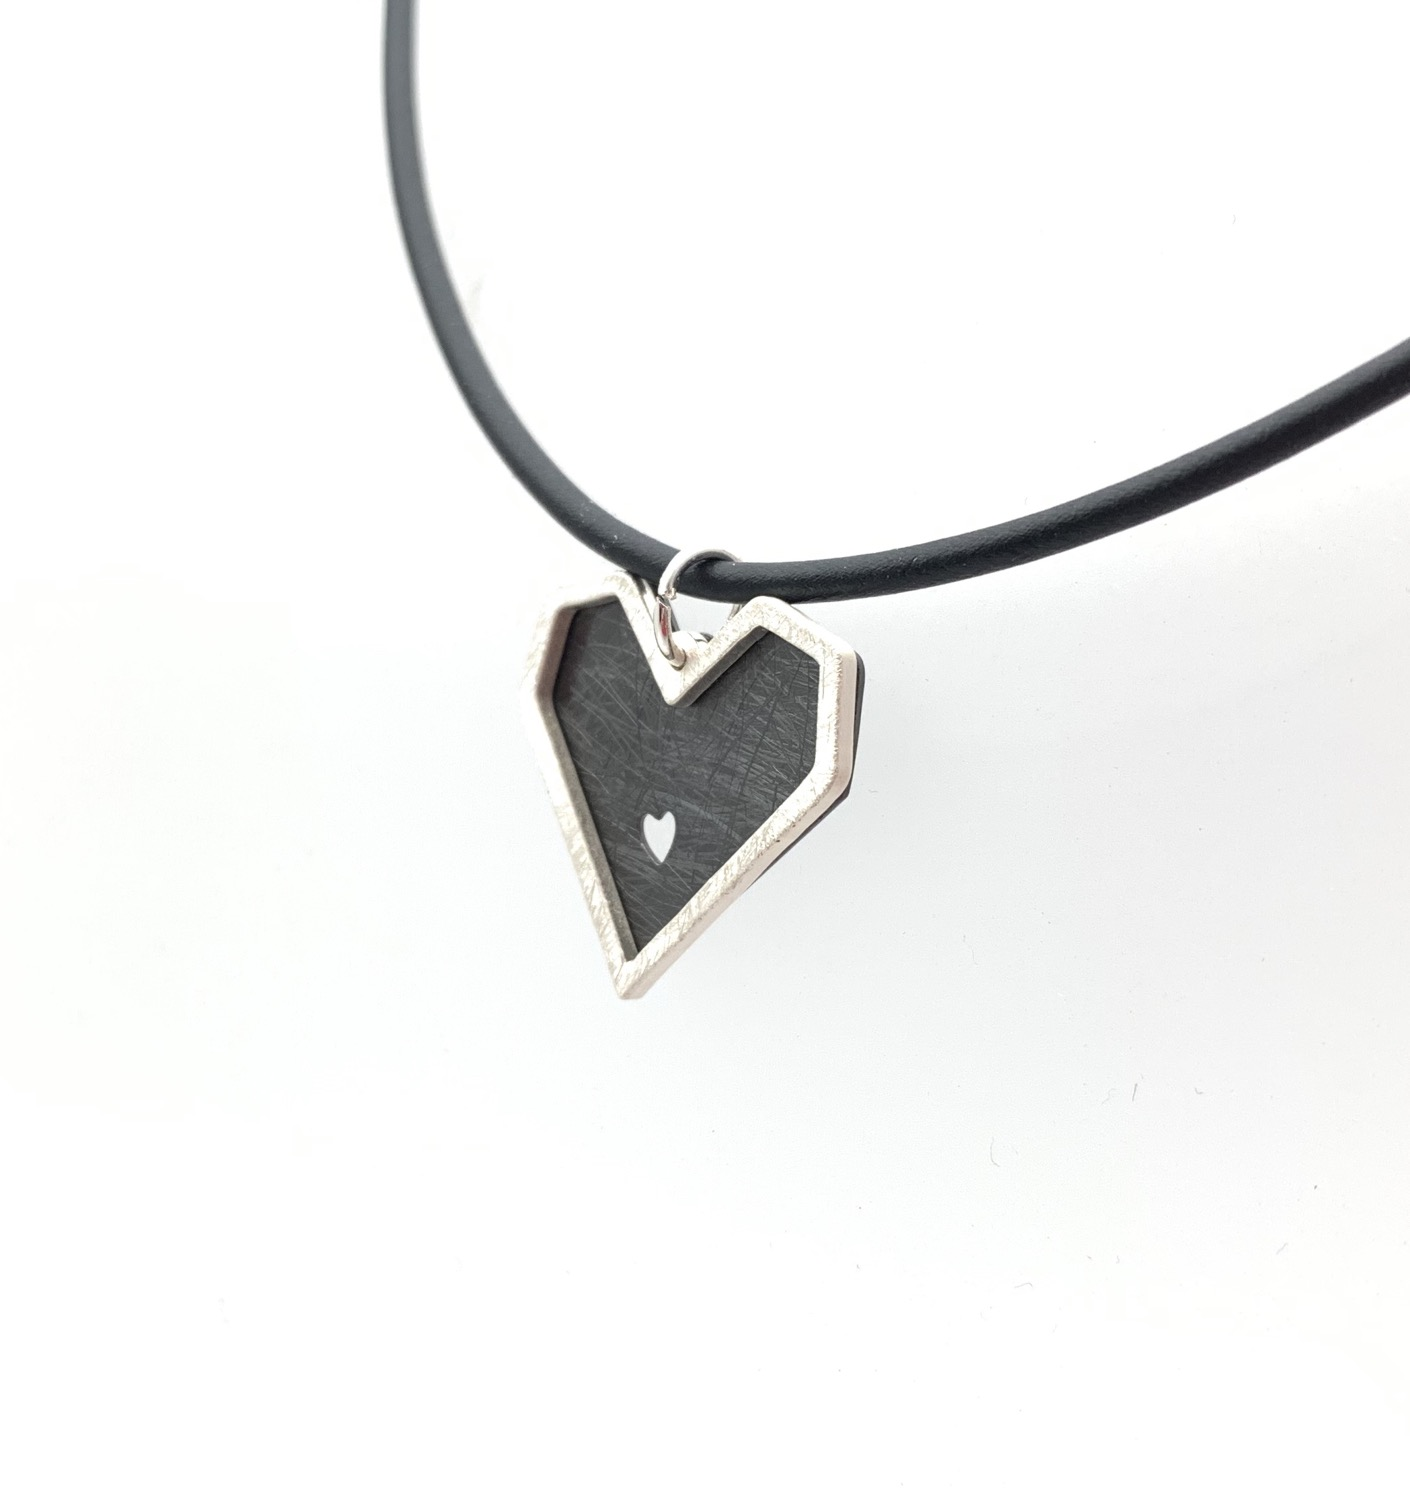 "Thumbnail: NS68 Silver and Black Heart Cord Necklace 16"" to 18"" w/extension"